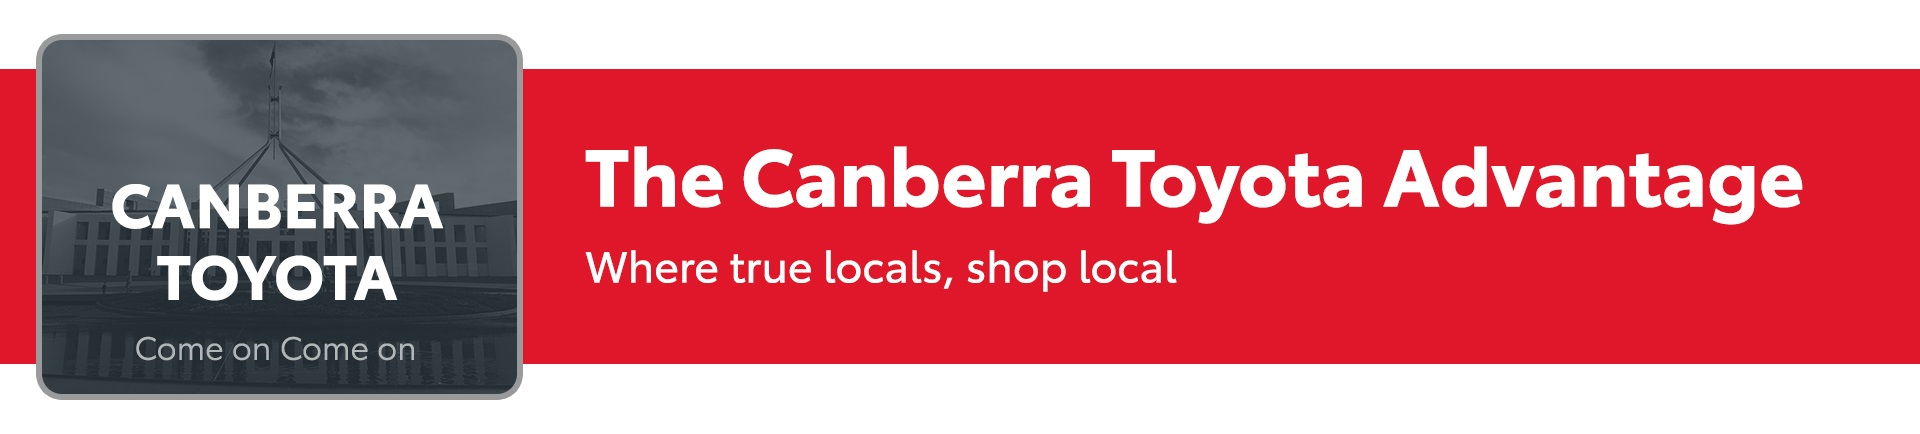 The Canberra Toyota Advantage